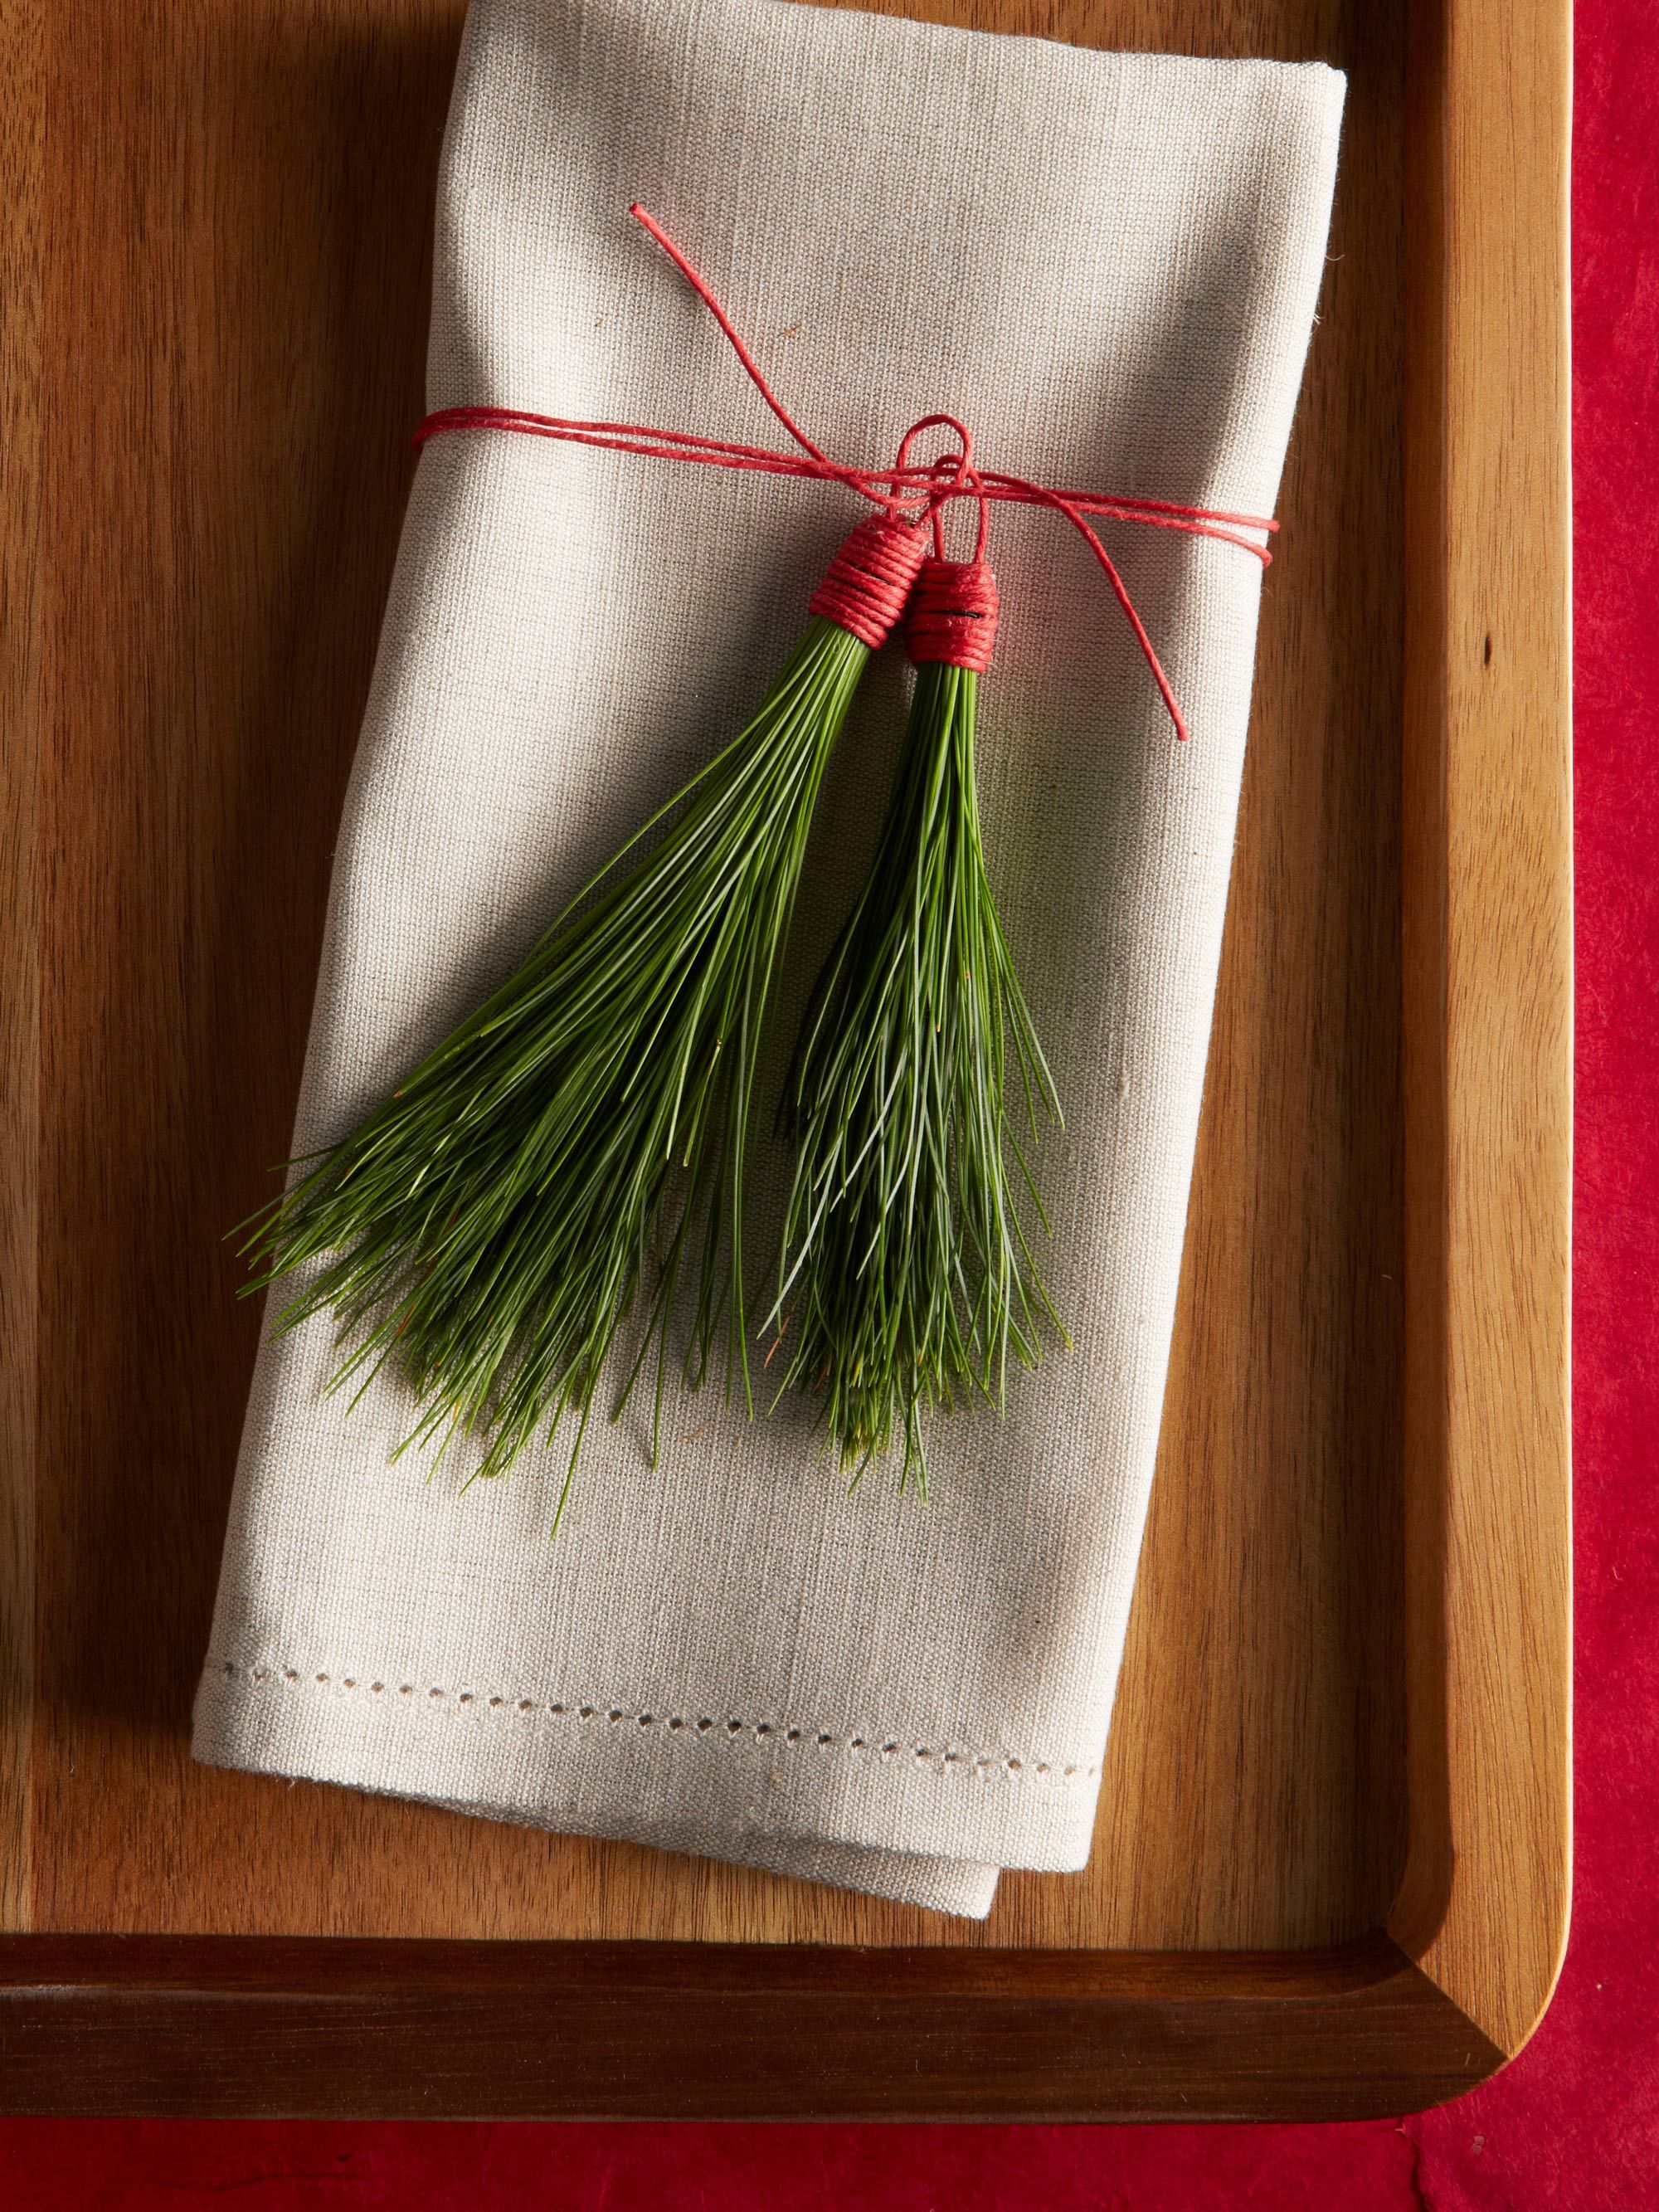 Linen napkins are a classic choice year-round. Make them ...